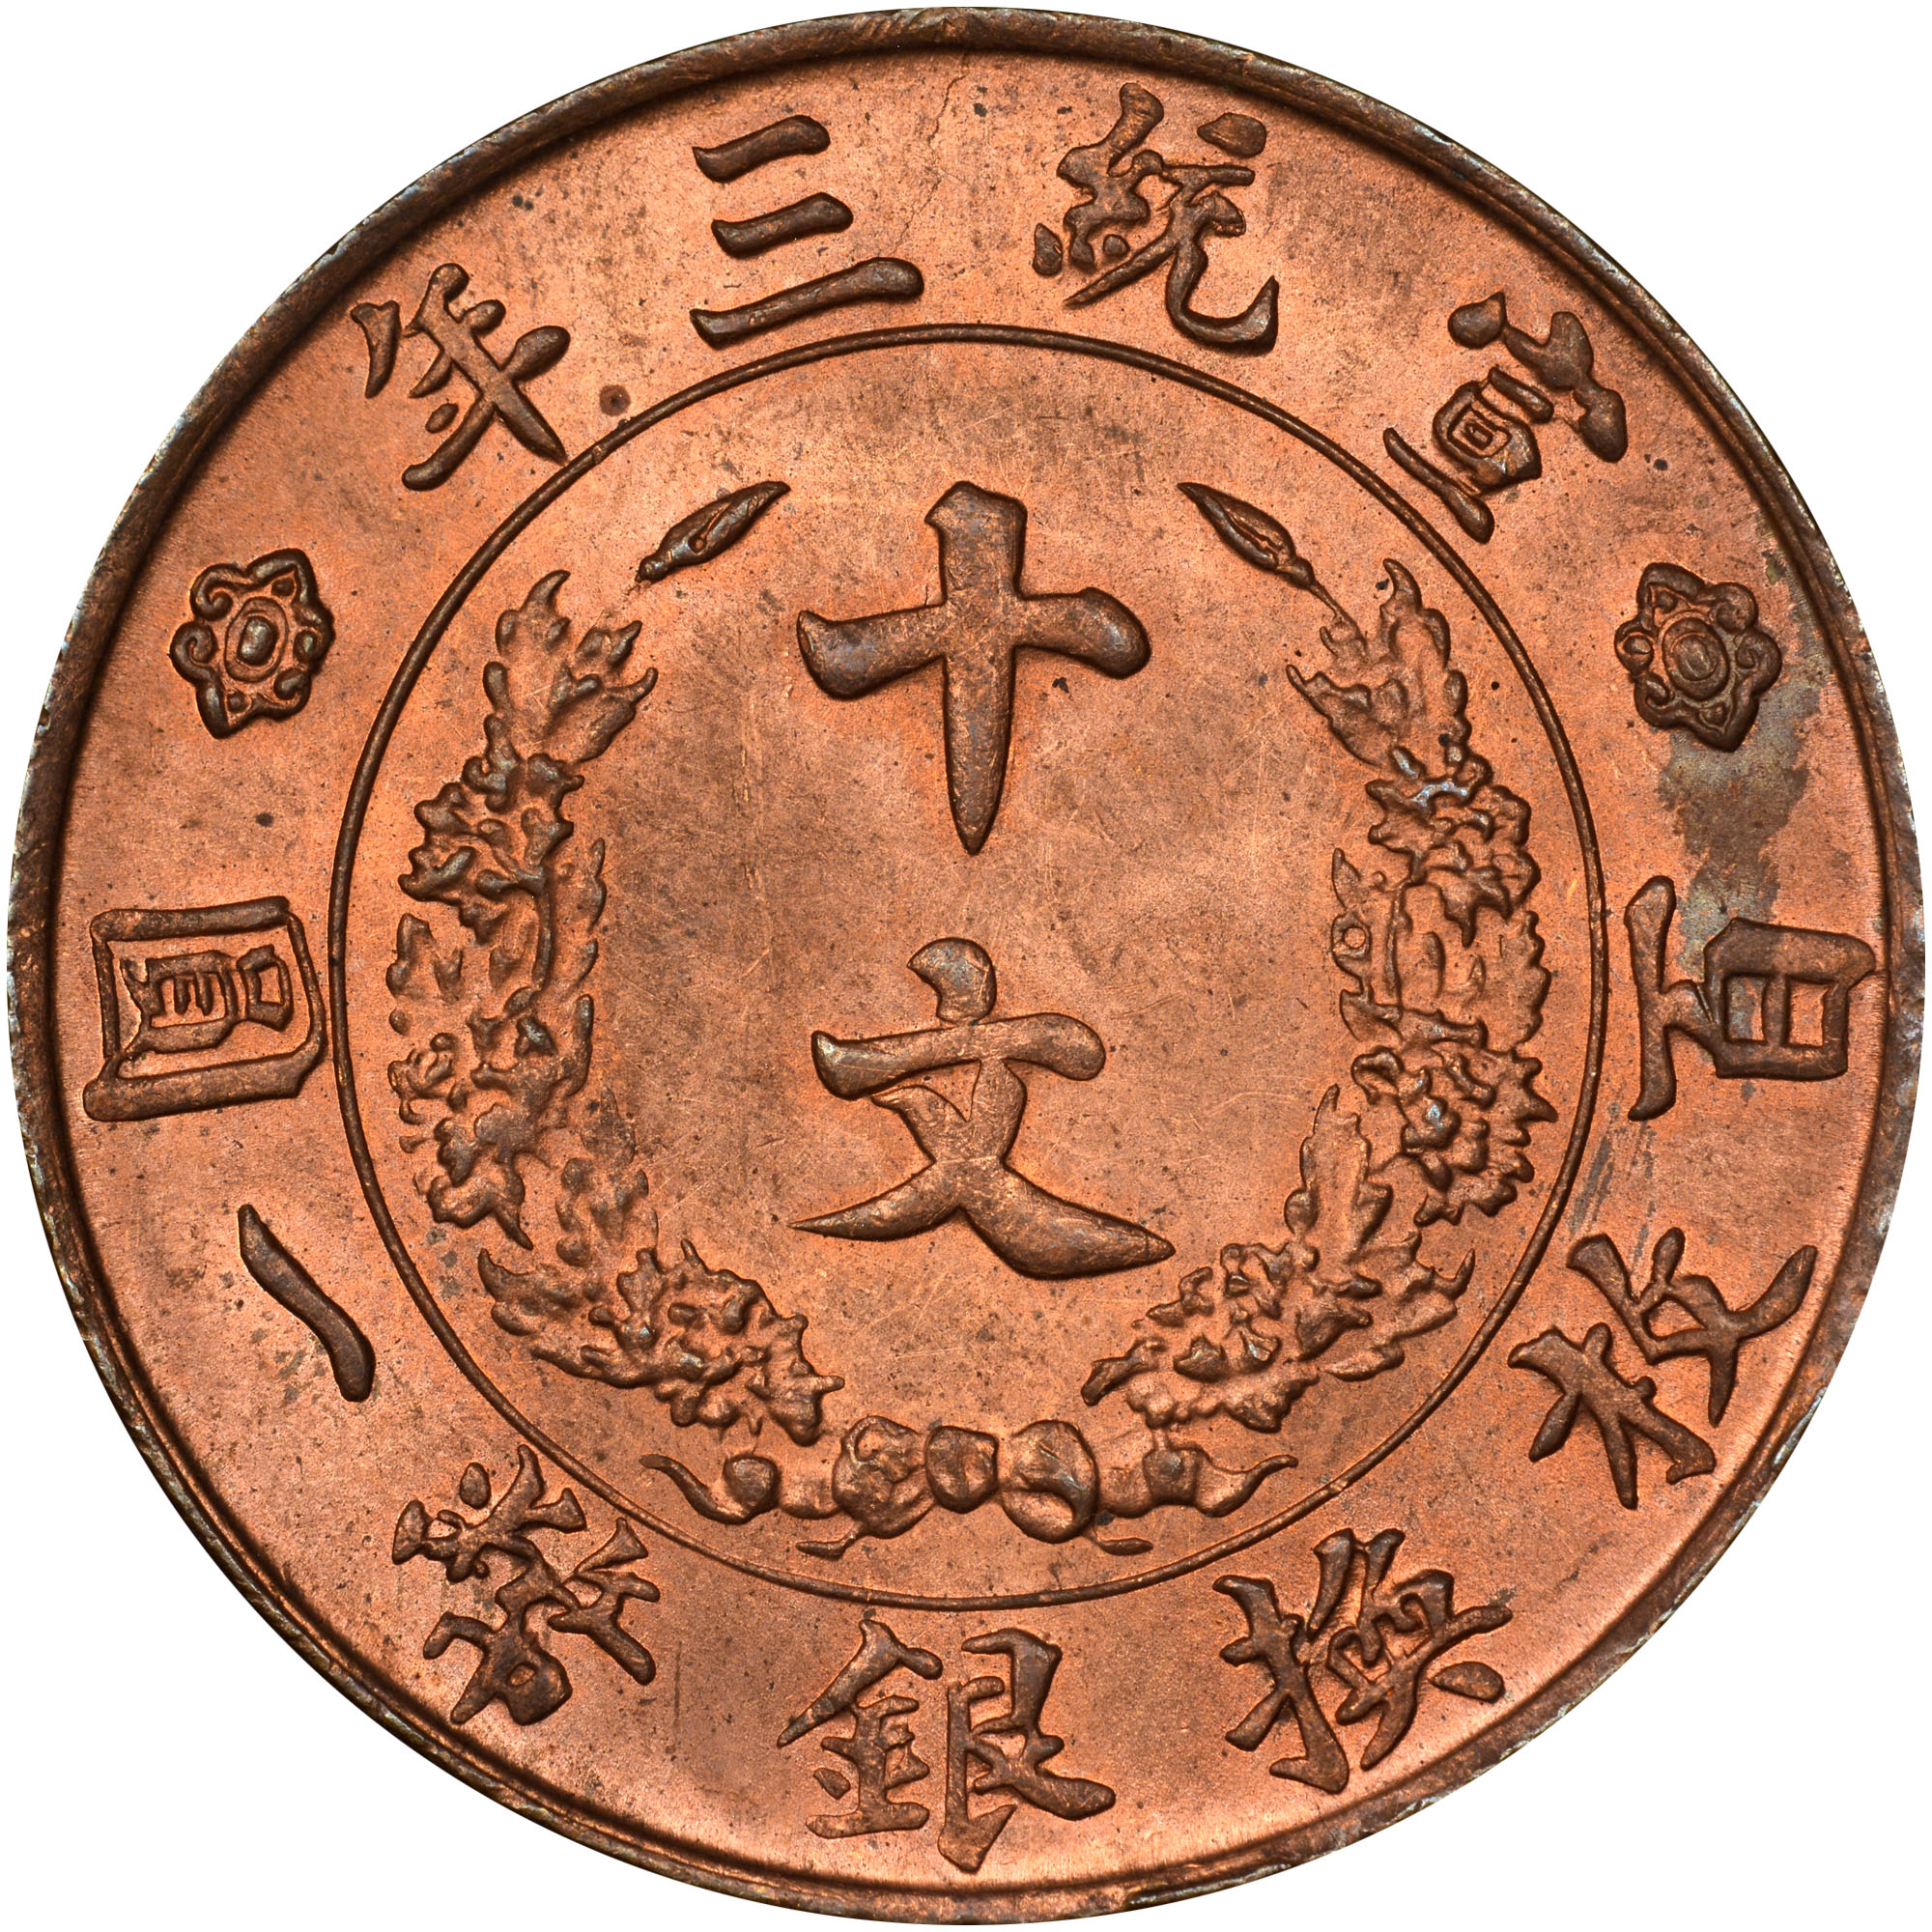 3(1911) China EMPIRE 10 Cash reverse